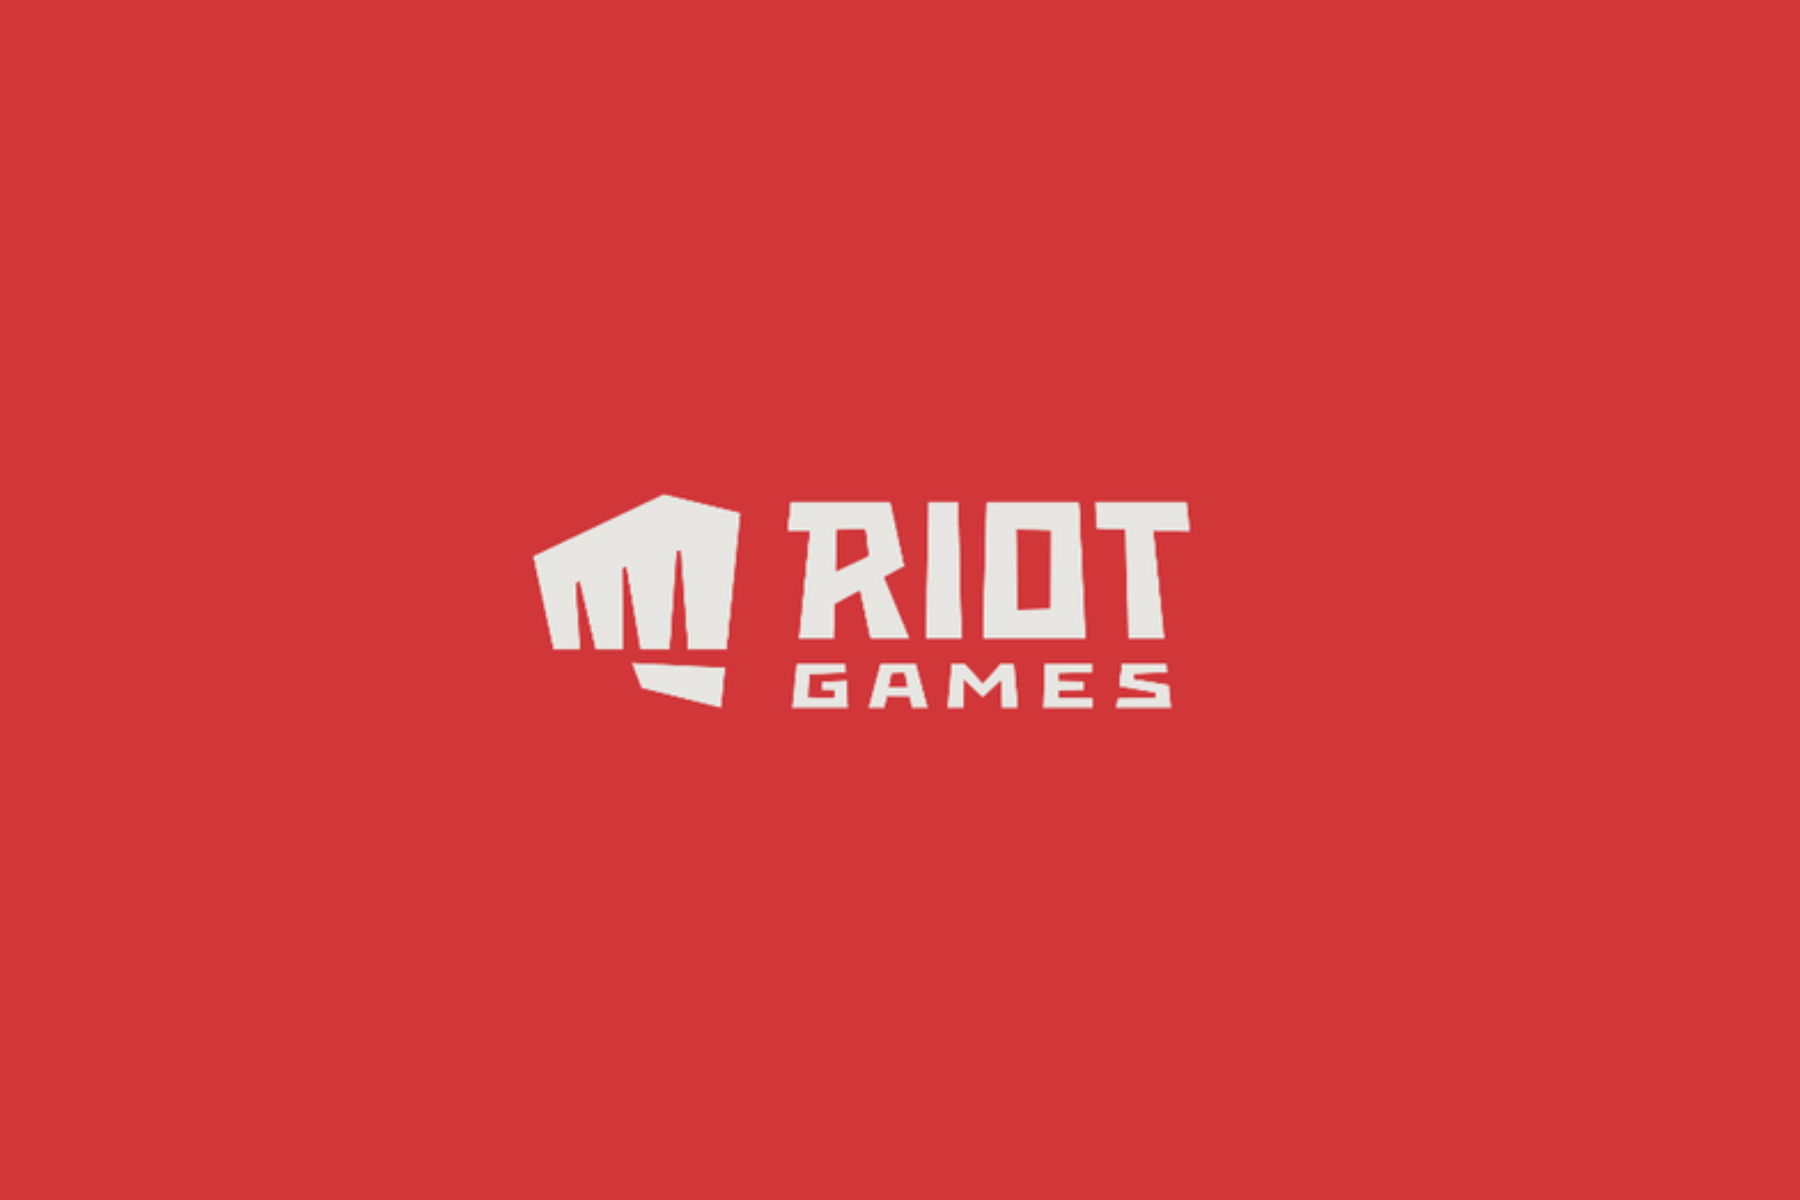 The State Of California Is Investigating Riot Games For Gender Discrimination